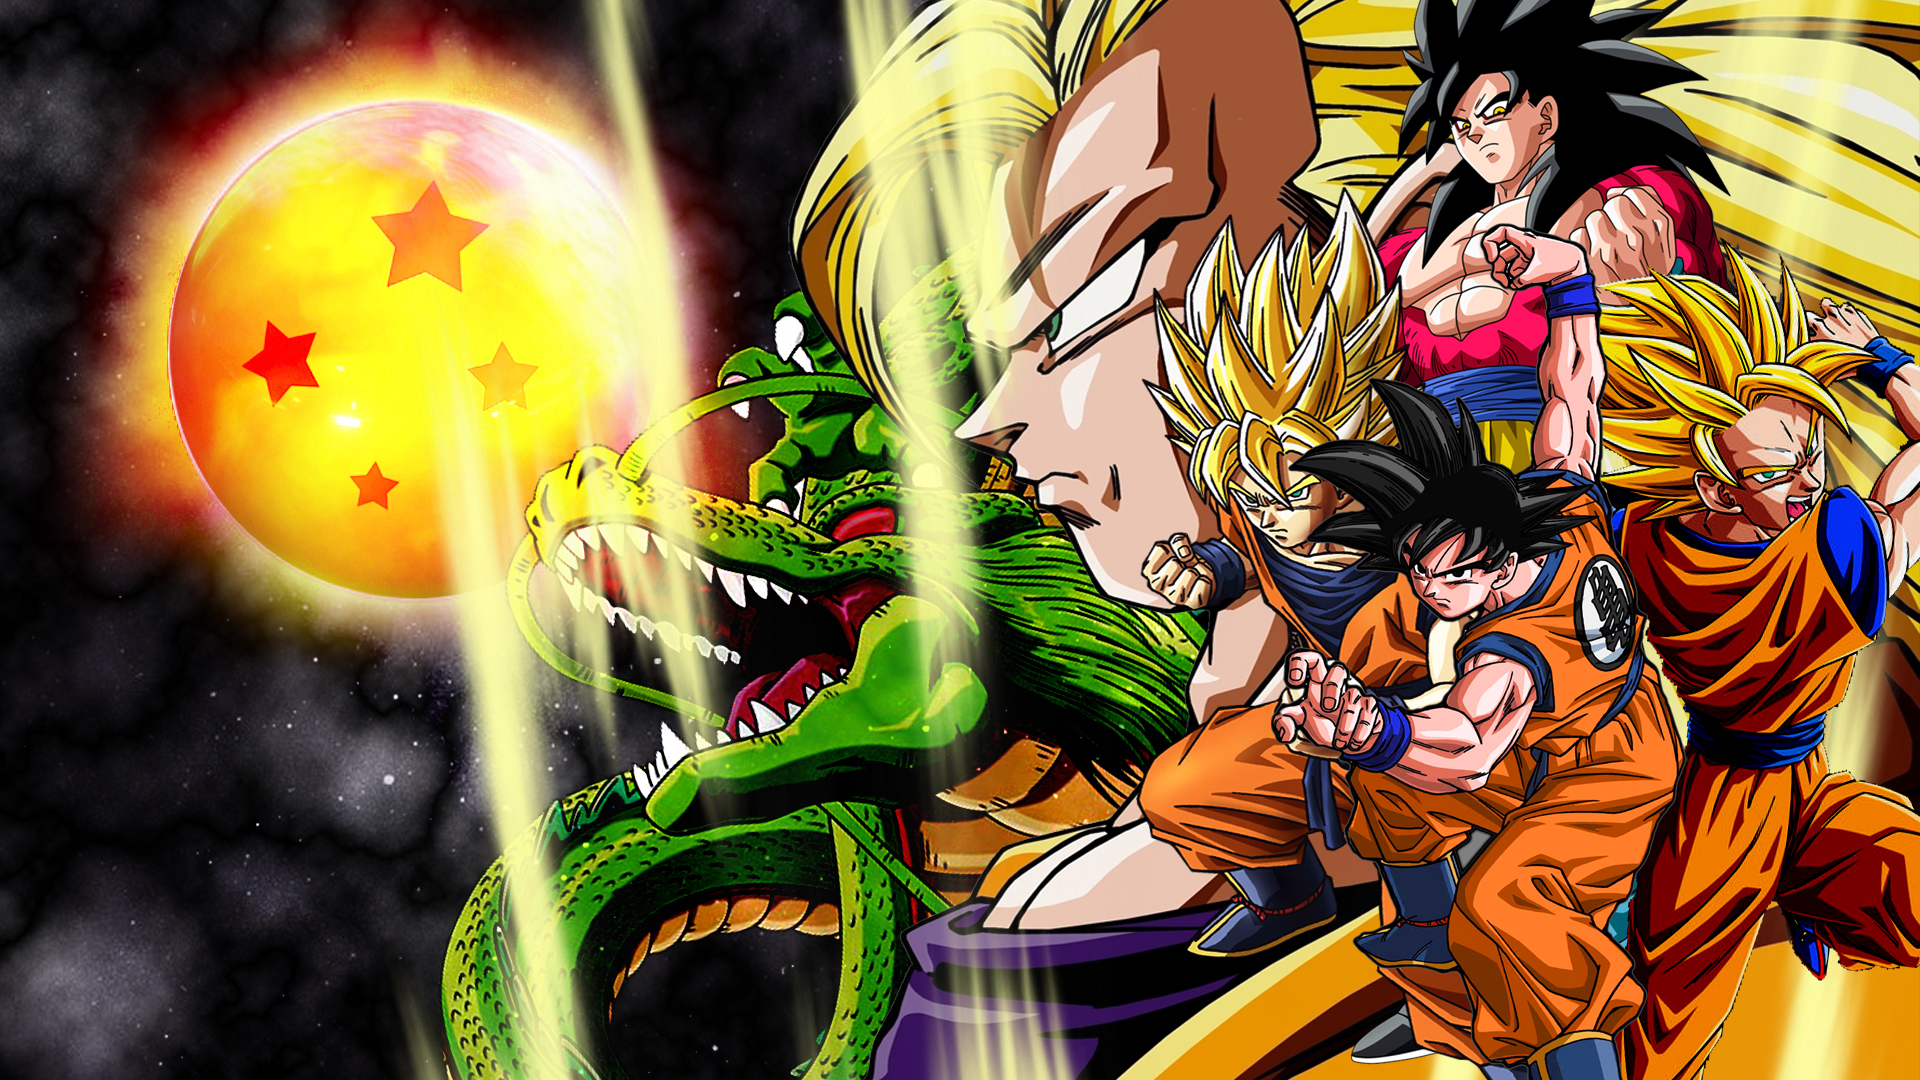 40 best goku wallpaper hd for pc dragon ball z - Dragon ball gt goku wallpaper ...